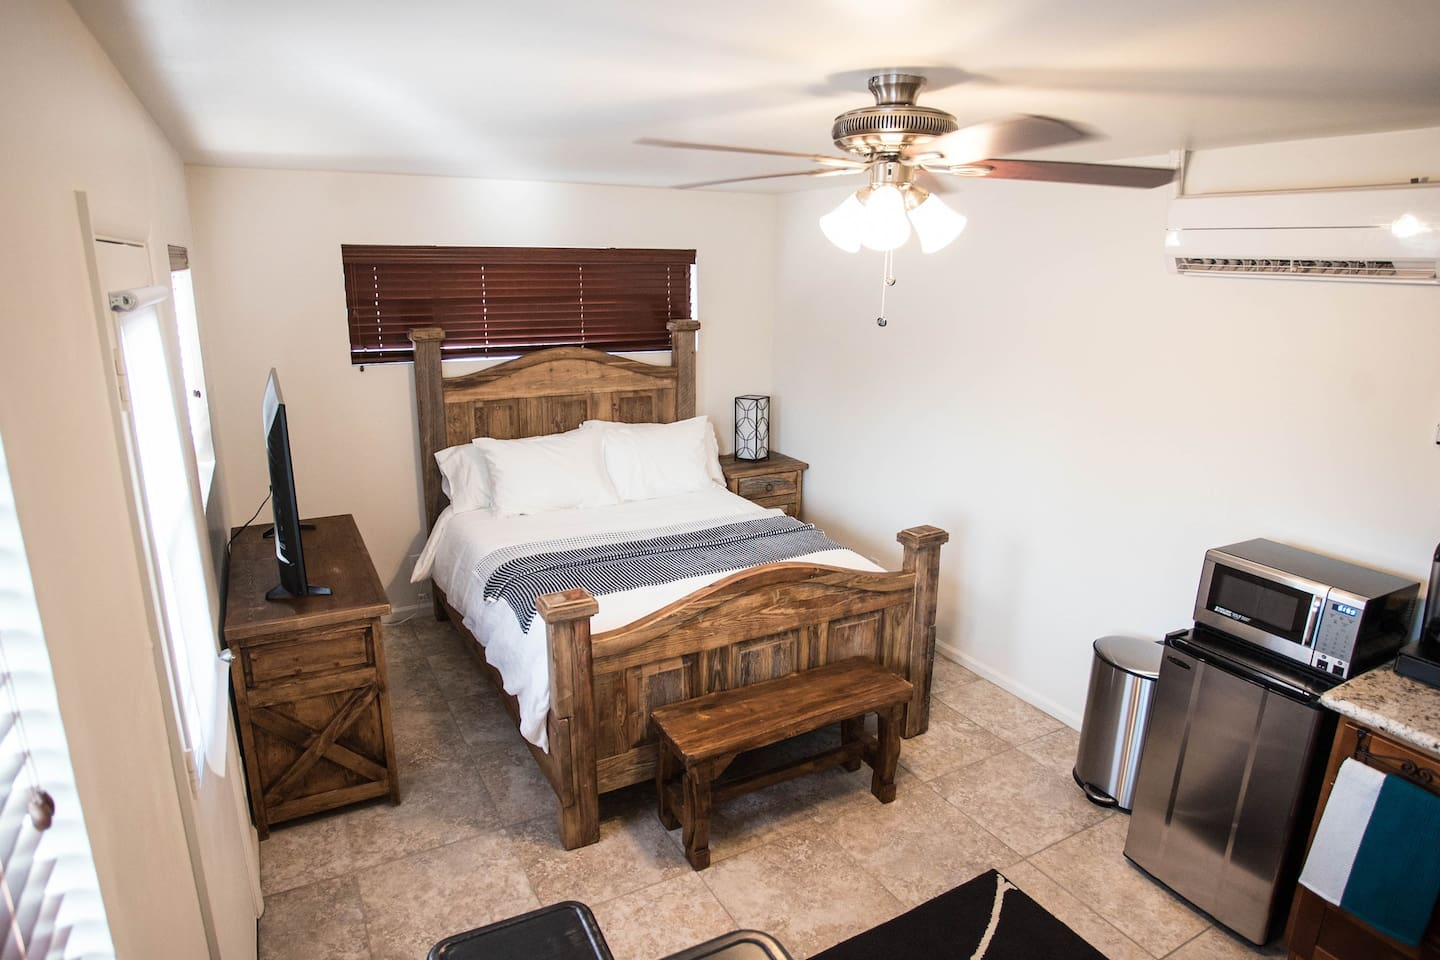 There is no doubt that there is plenty of light in the guesthouse. The AC is brand new and the ceiling fan helps to keep the room even cooler in the summer time.